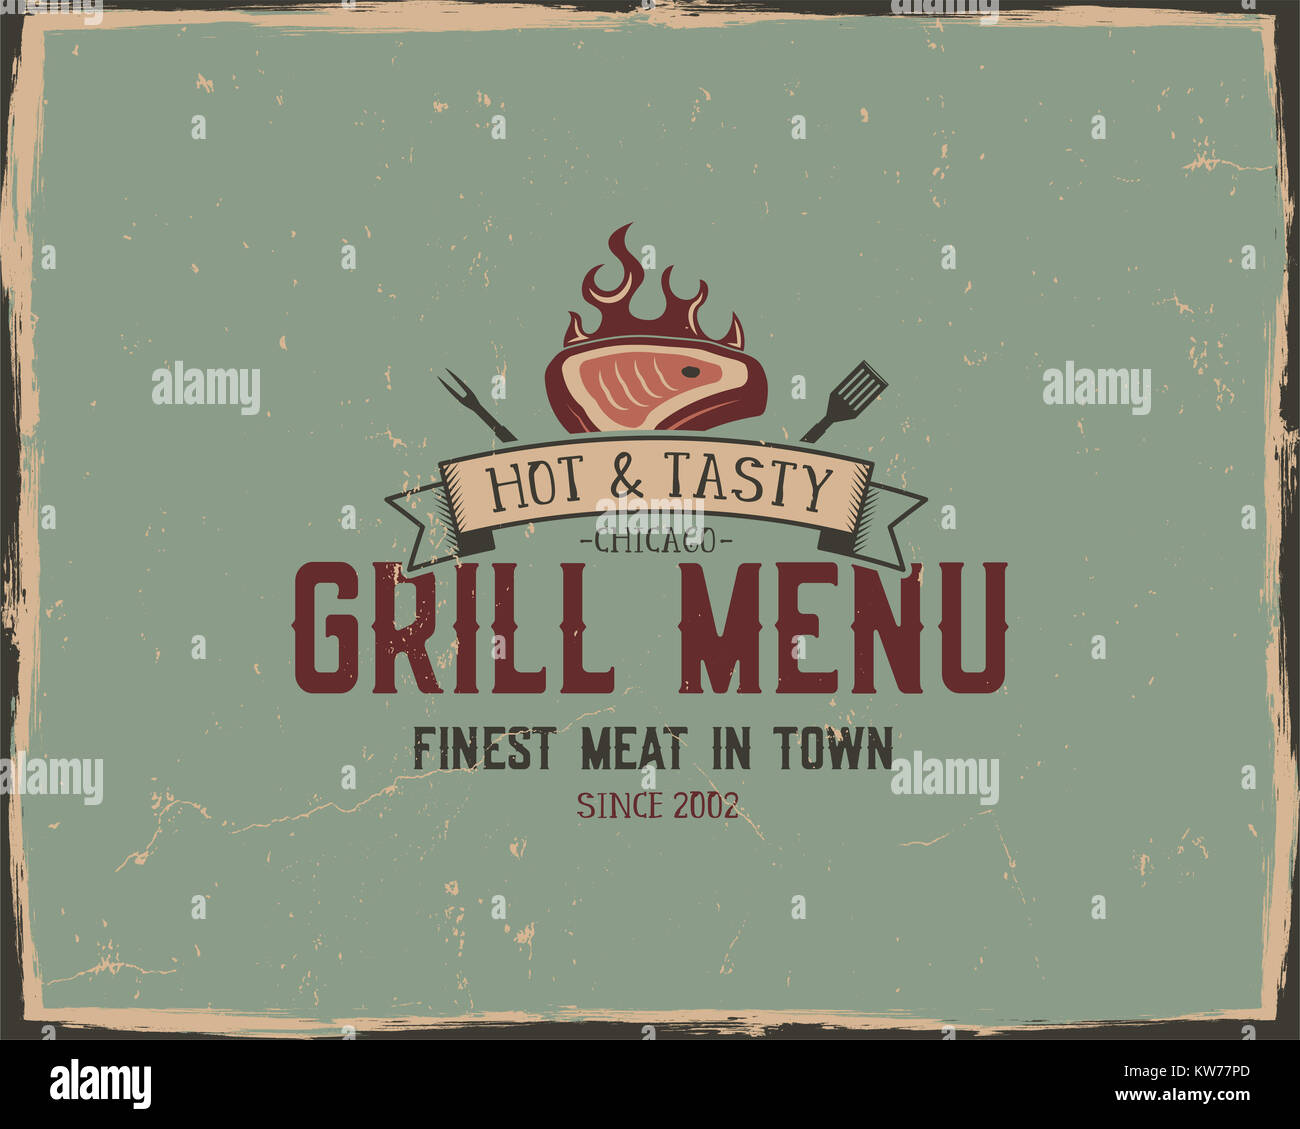 Fast Food Menu Design Template Stockfotos & Fast Food Menu Design ...